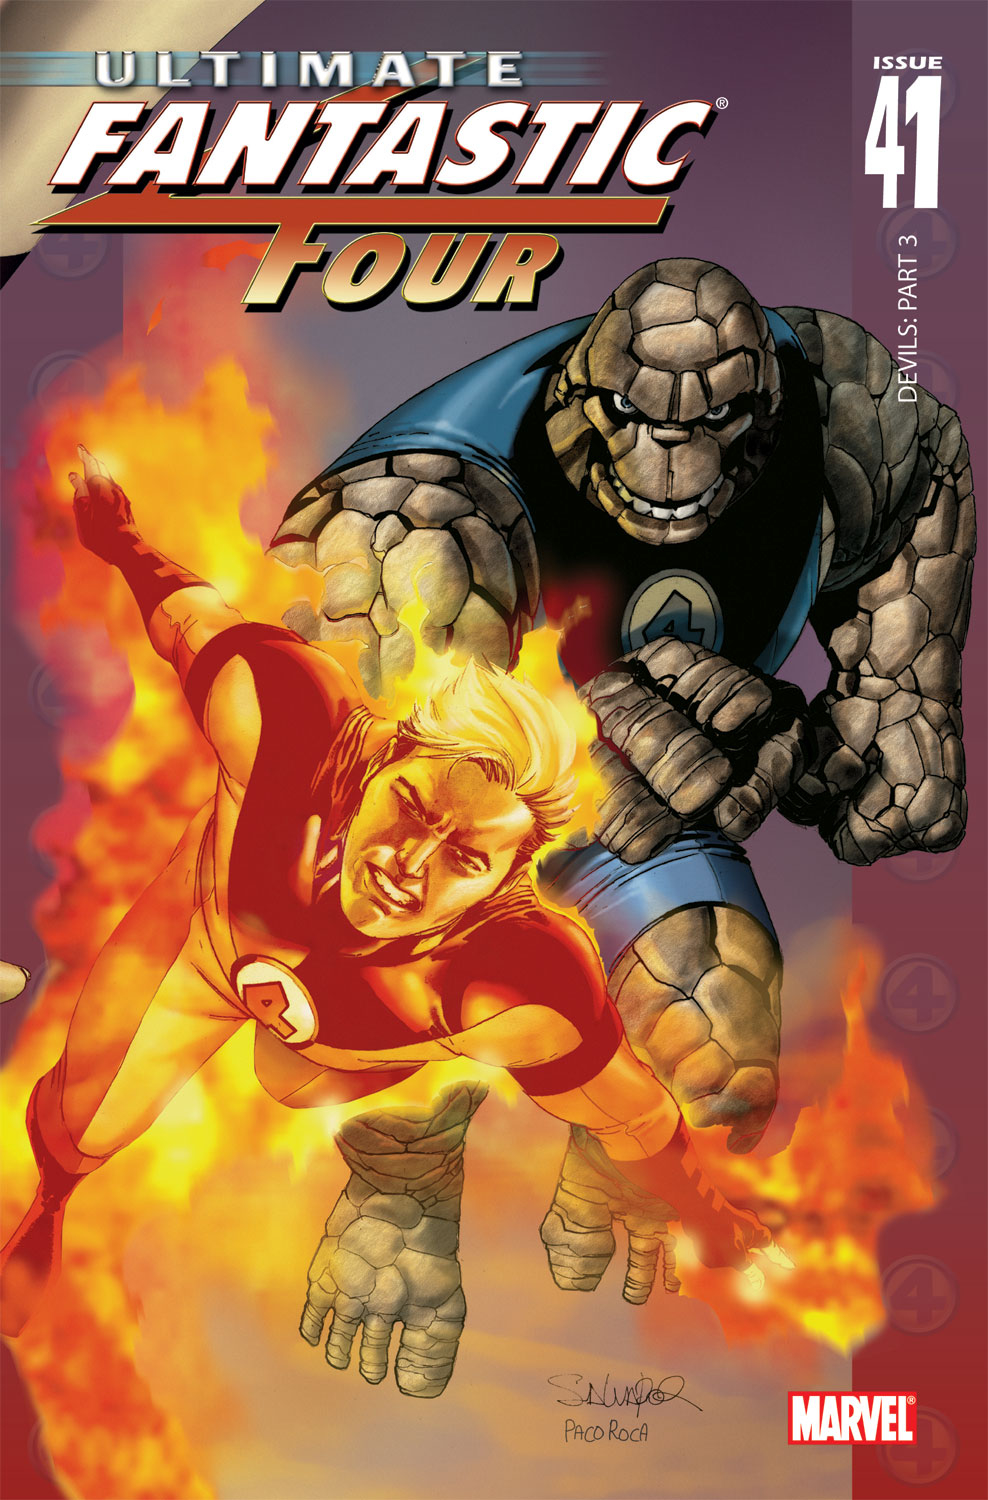 Read online Ultimate Fantastic Four (2004) comic -  Issue #41 - 1